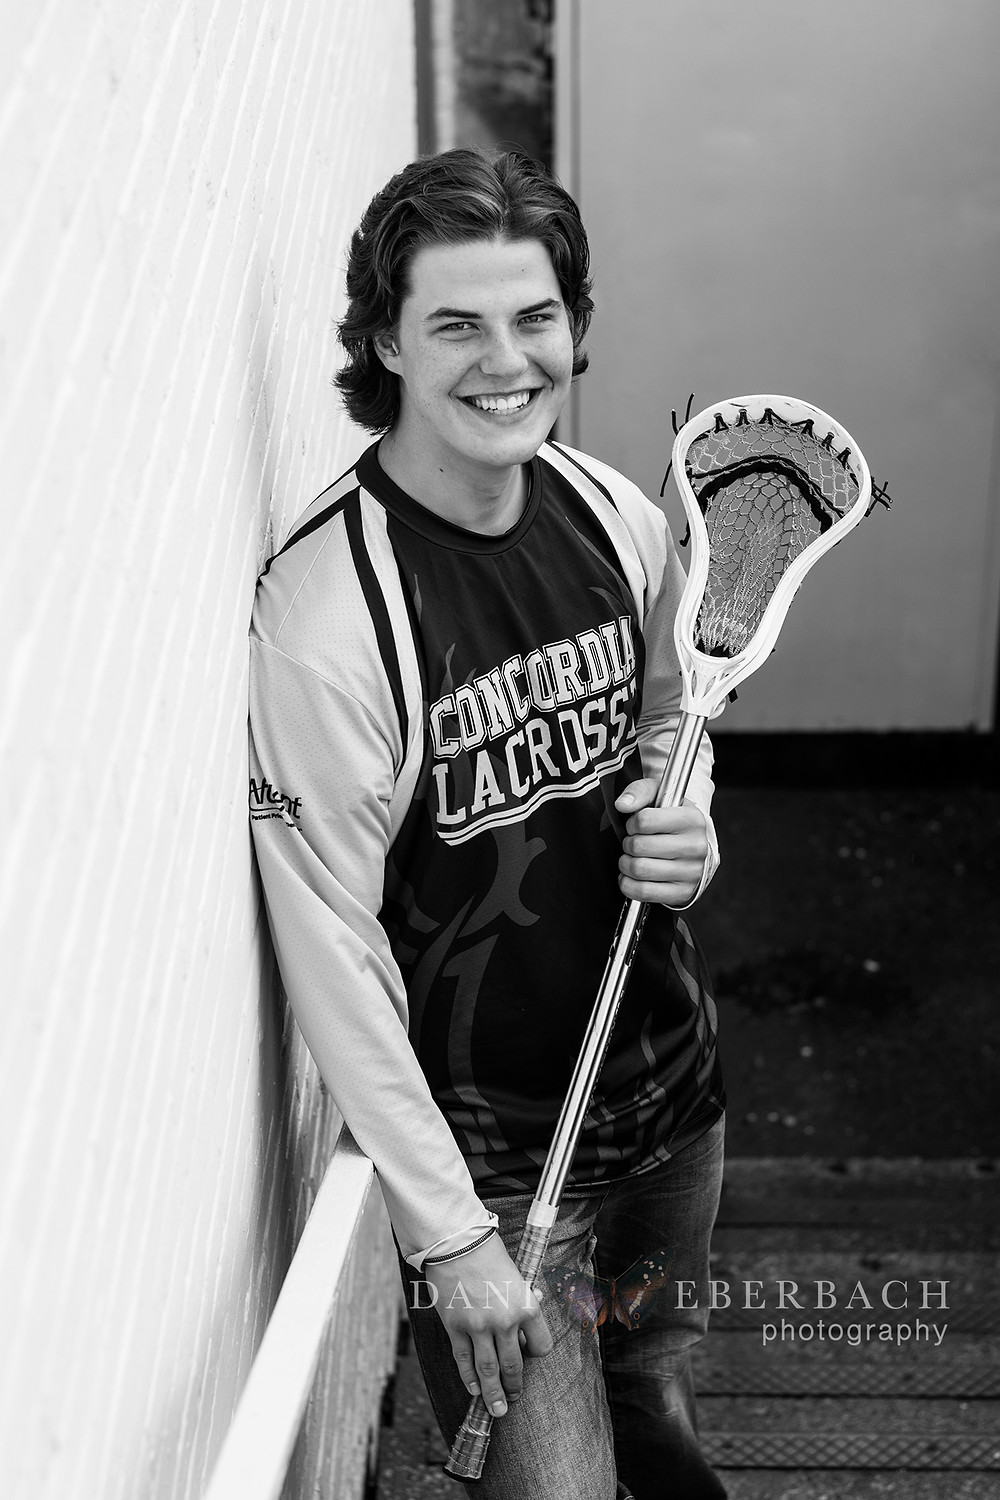 Black and white athlete senior portrait